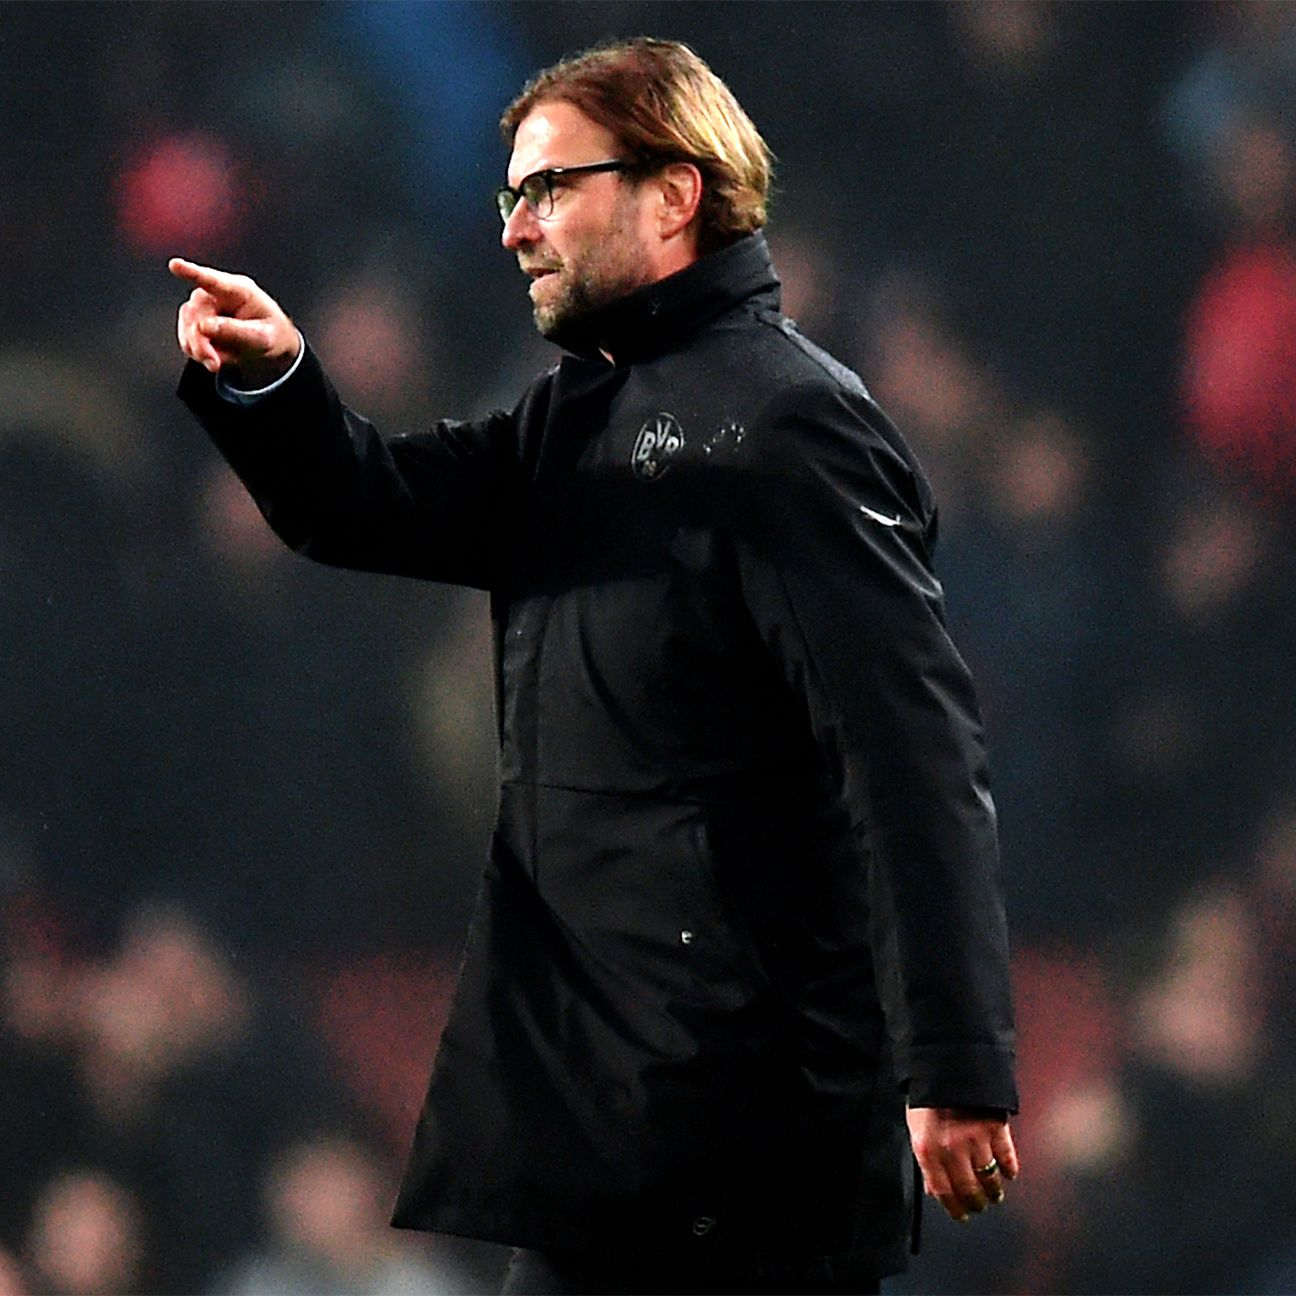 A win versus Eintracht Frankfurt could help get Jurgen Klopp's Borussia Dortmund pointed back in the right direction.